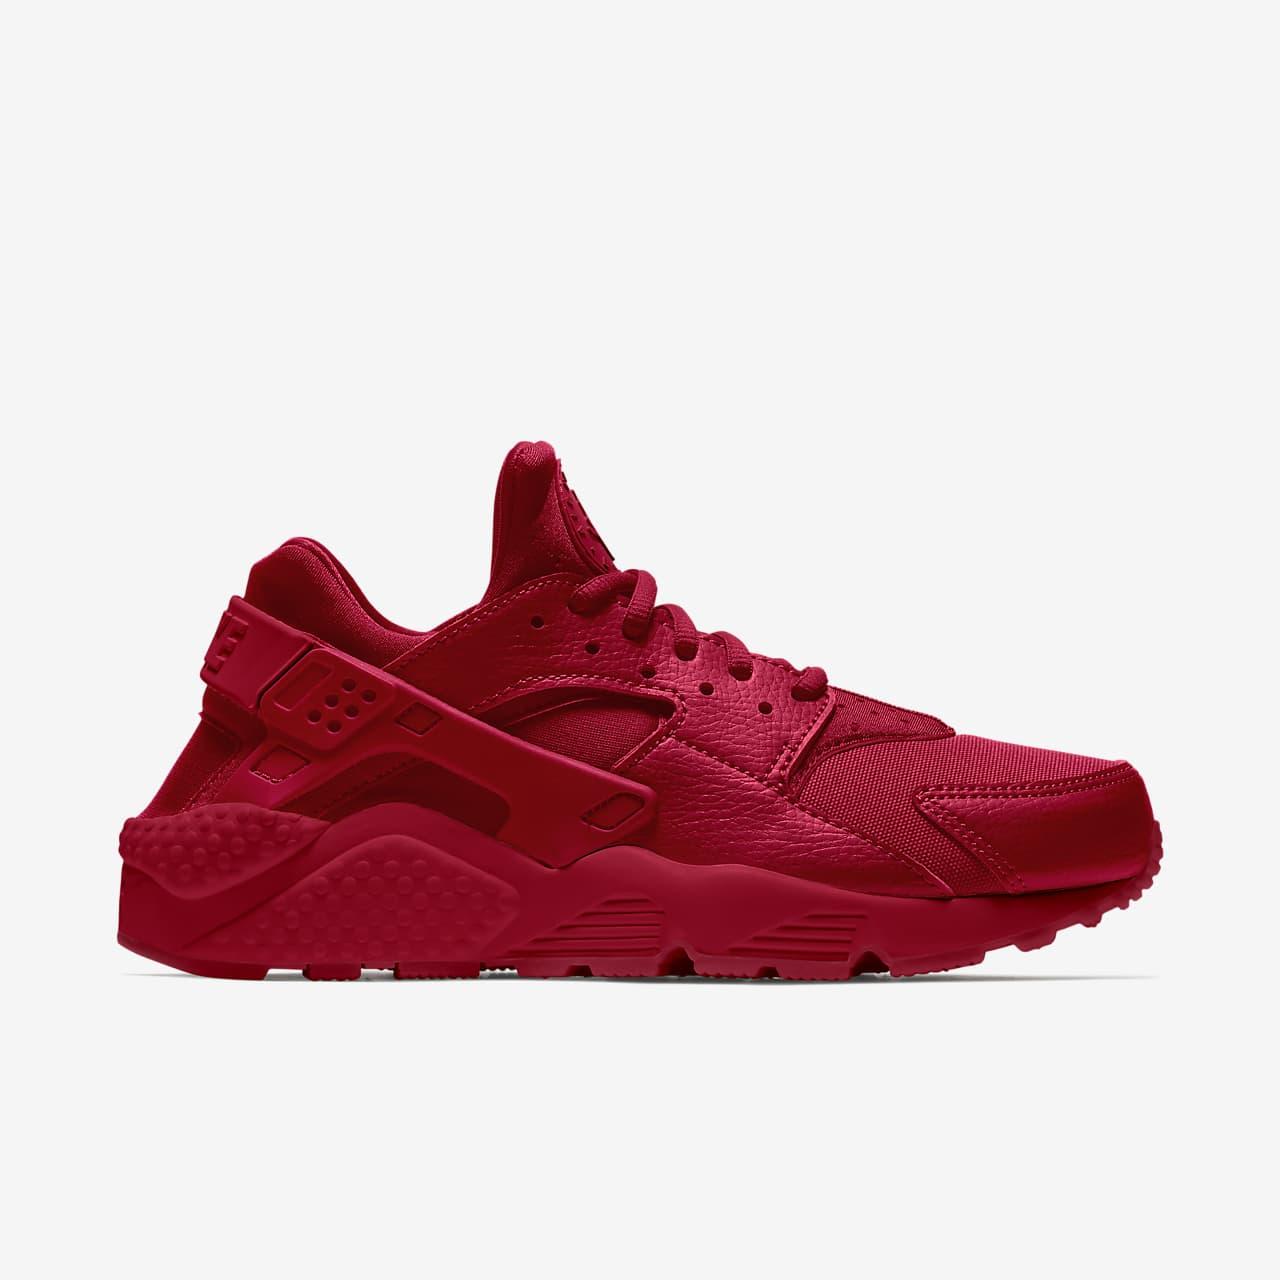 Nike Air Huarache Run 女子运动鞋